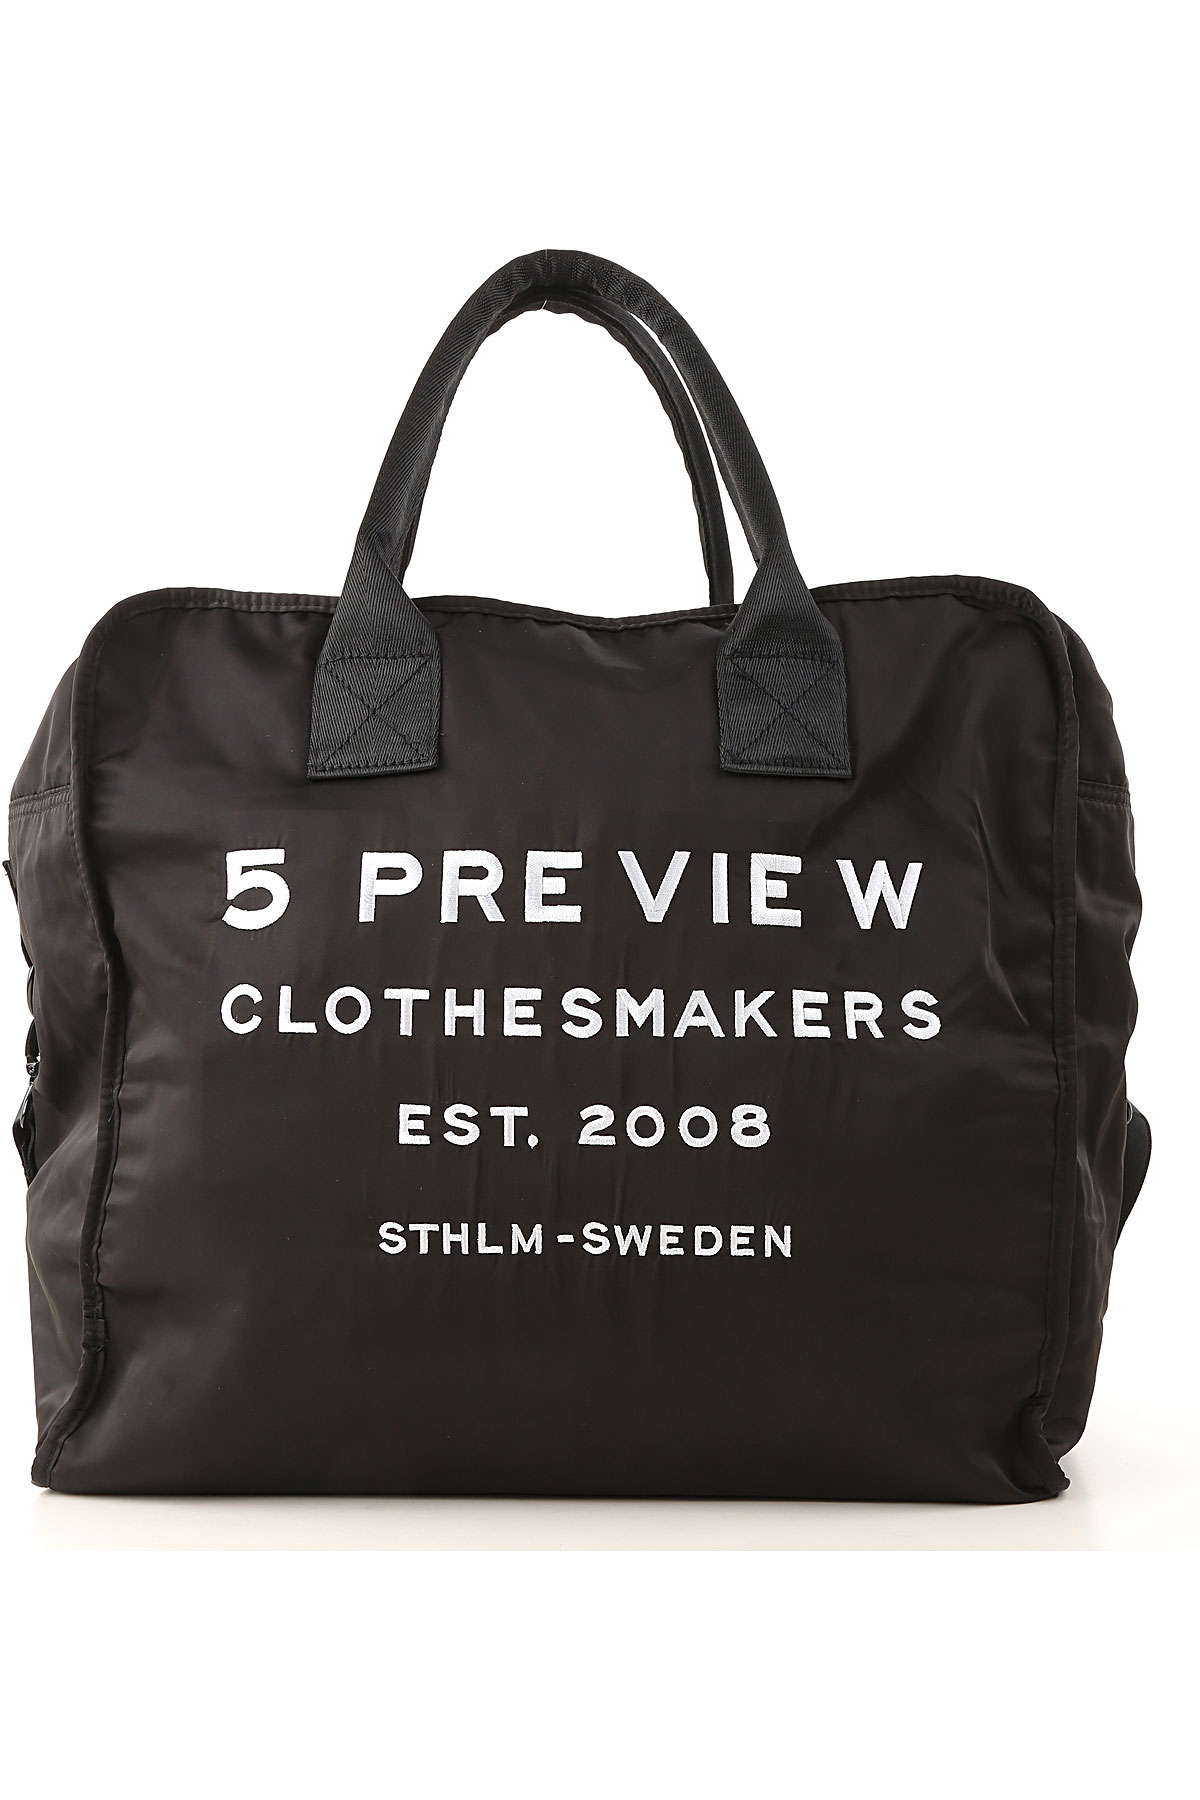 Image of 5 Preview Tote Bag, Black, polyester, 2017